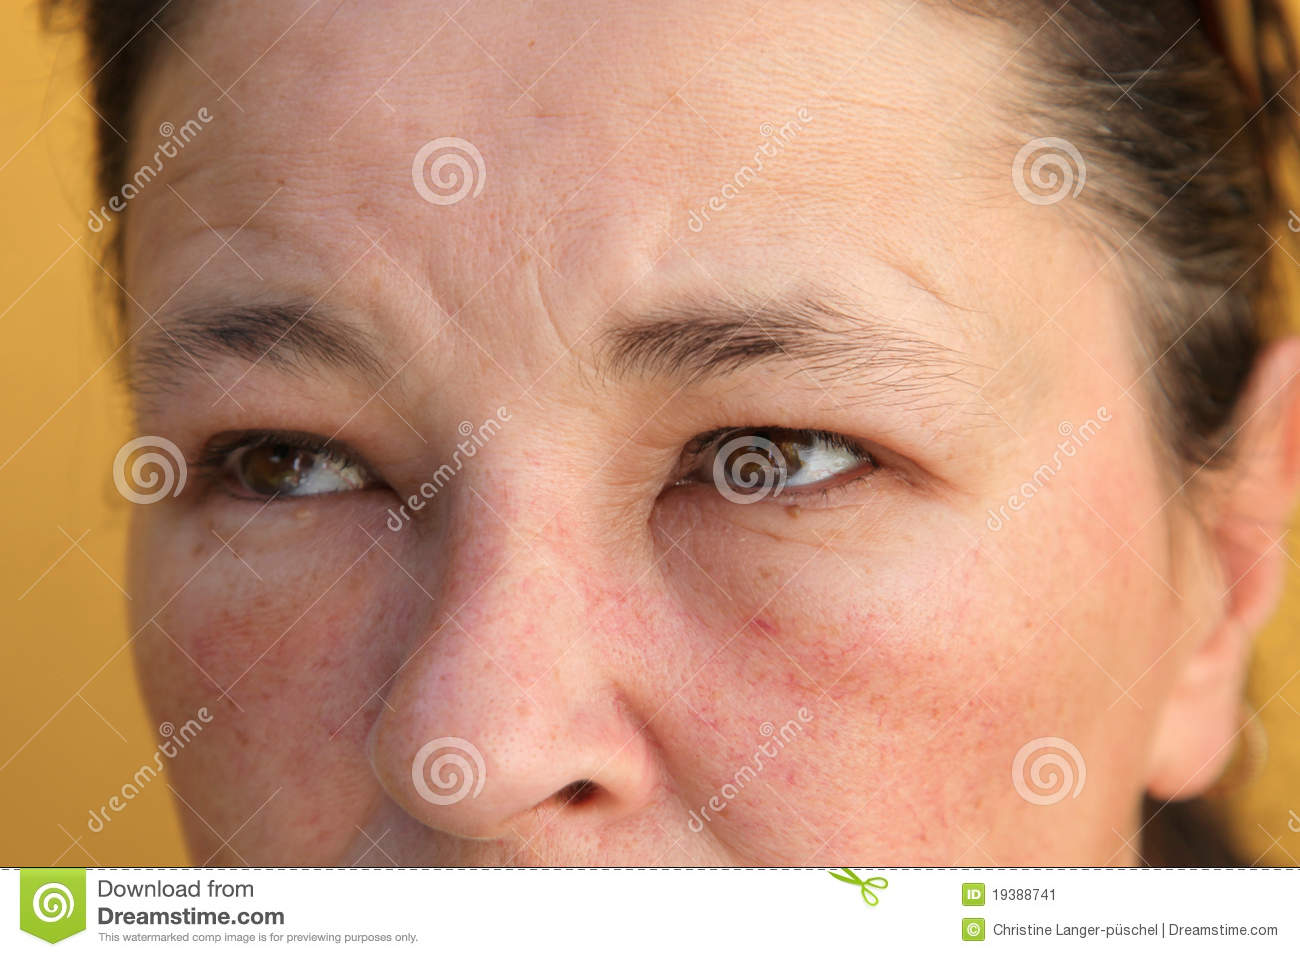 Stock Image  Allergies   Swollen Eyes And Face